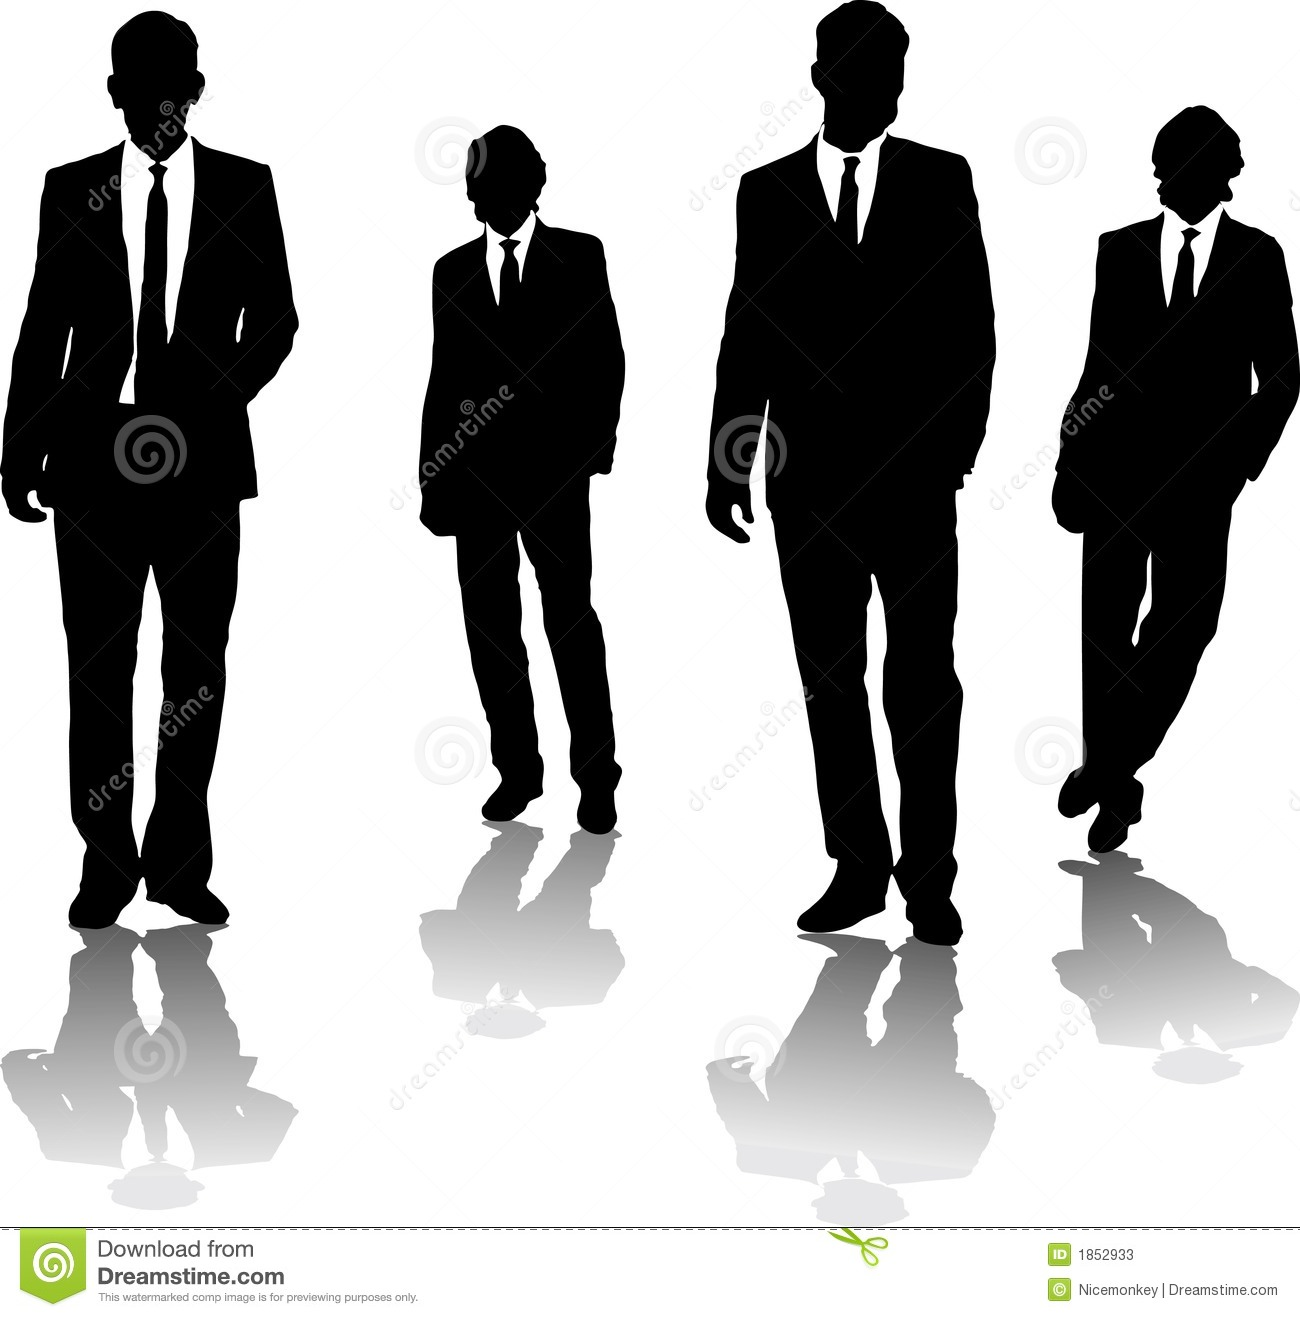 Four business men drawn in black silhouette in a gangster style.